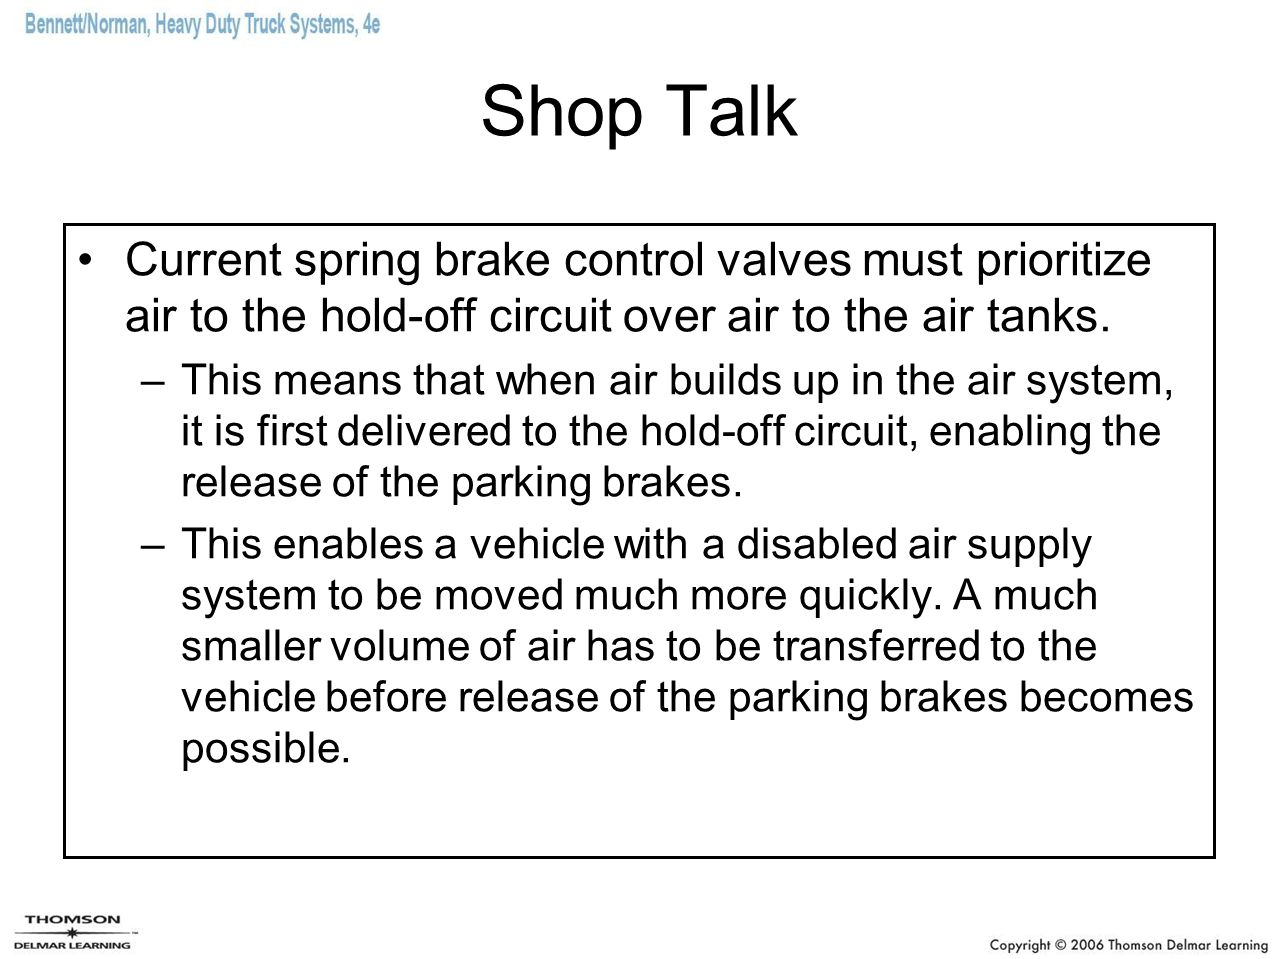 Shop Talk Current spring brake control valves must prioritize air to the hold-off circuit over air to the air tanks.